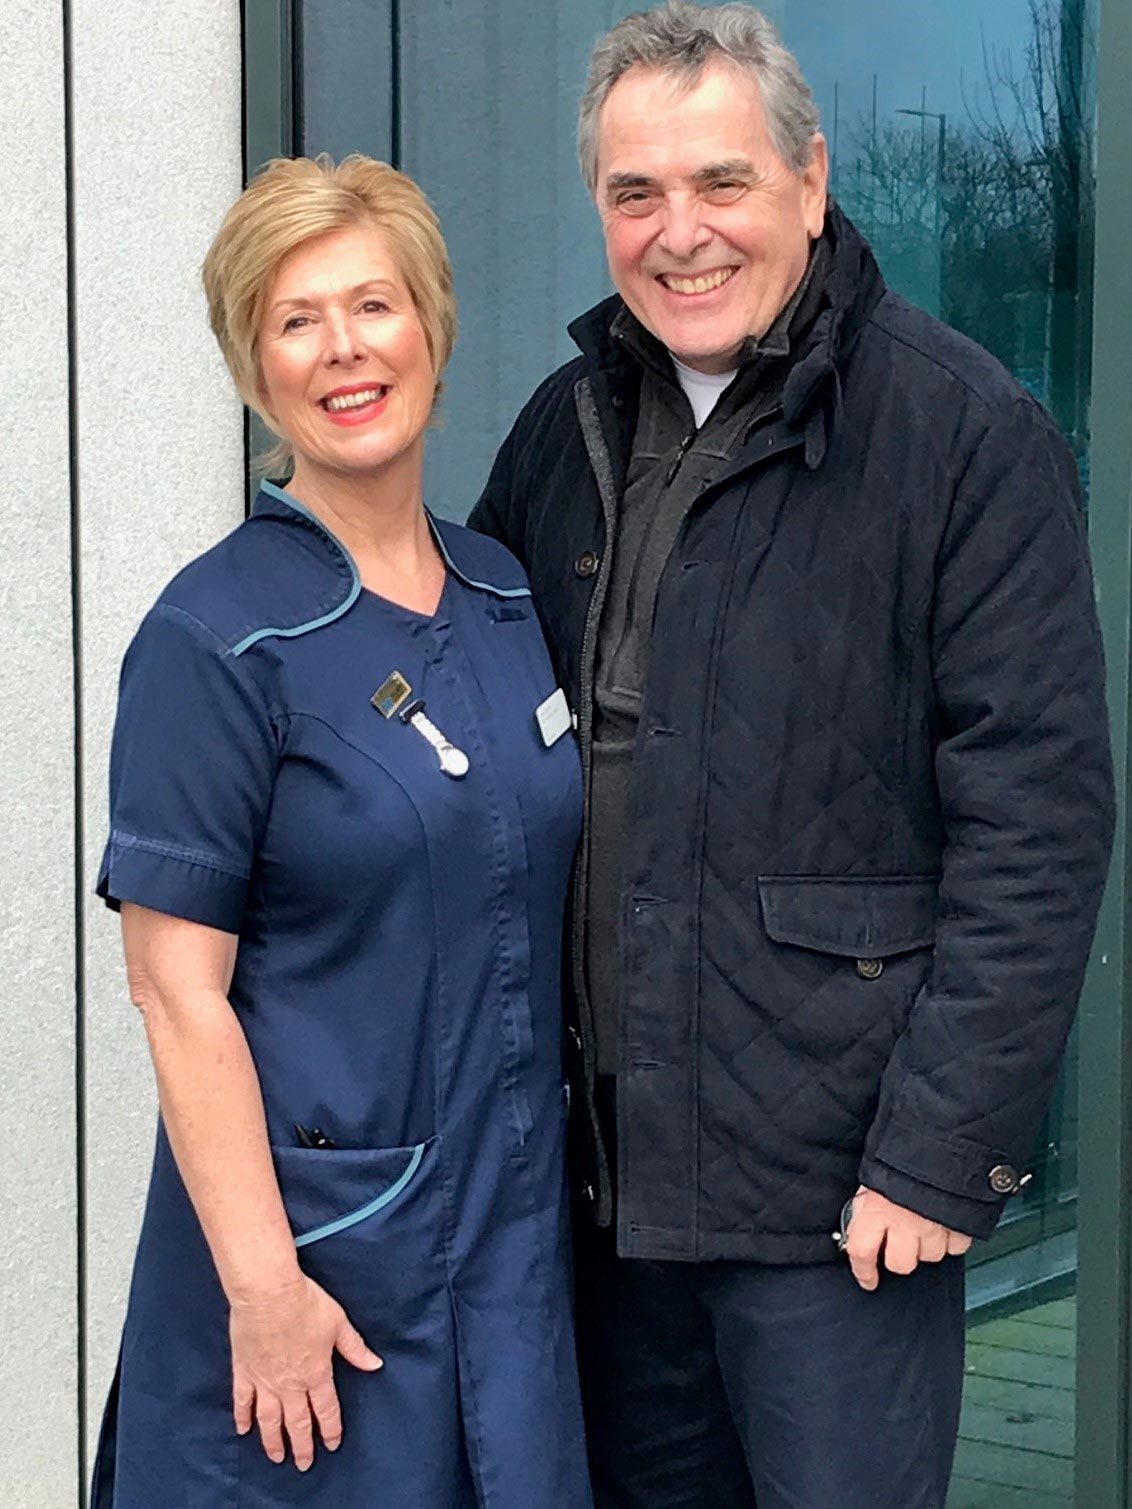 Heart surgery saves patient's life following heart failure